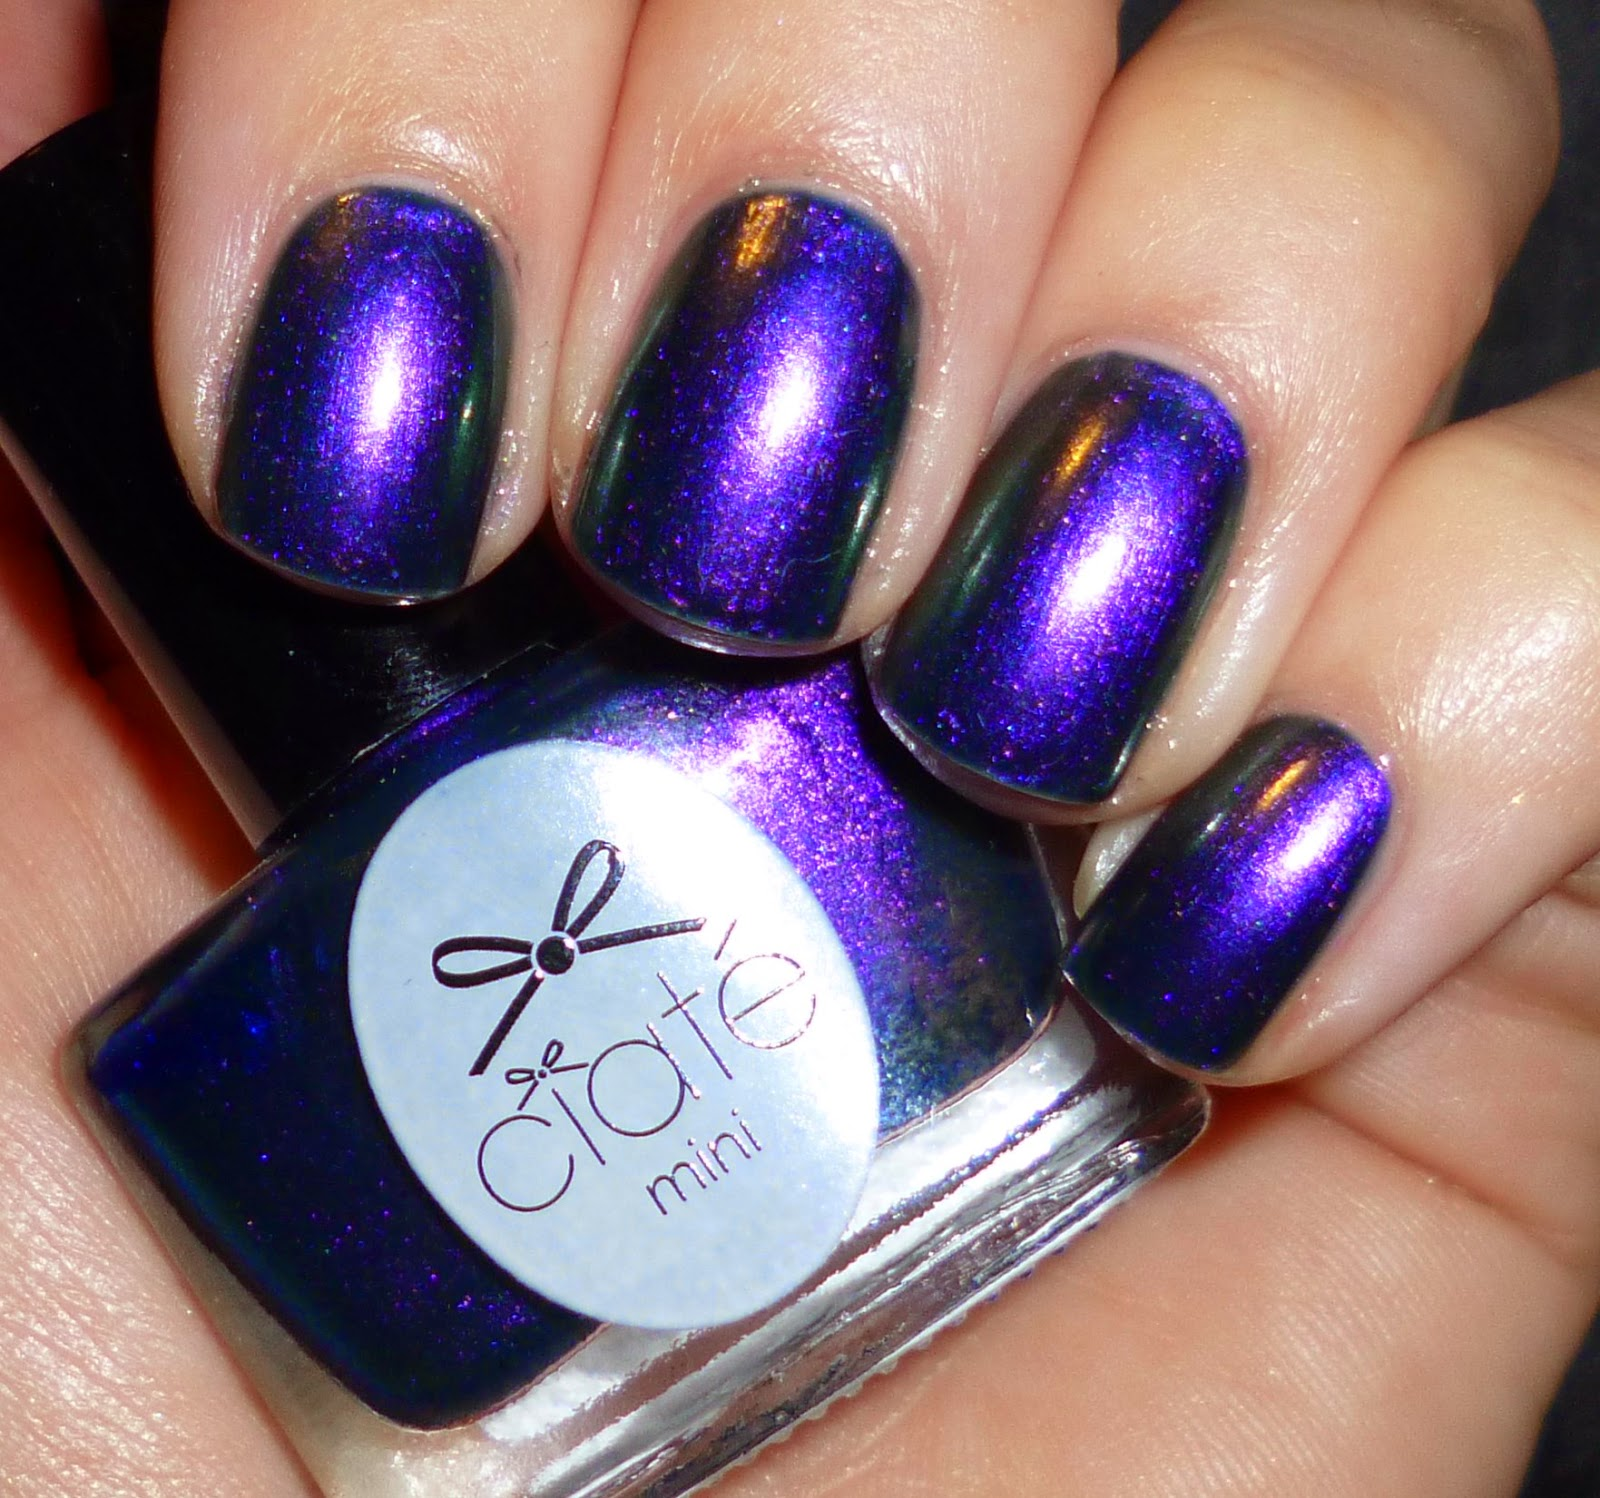 Swatch Ciate: Lou Is Perfectly Polished: Swatch: Ciate: Starlet